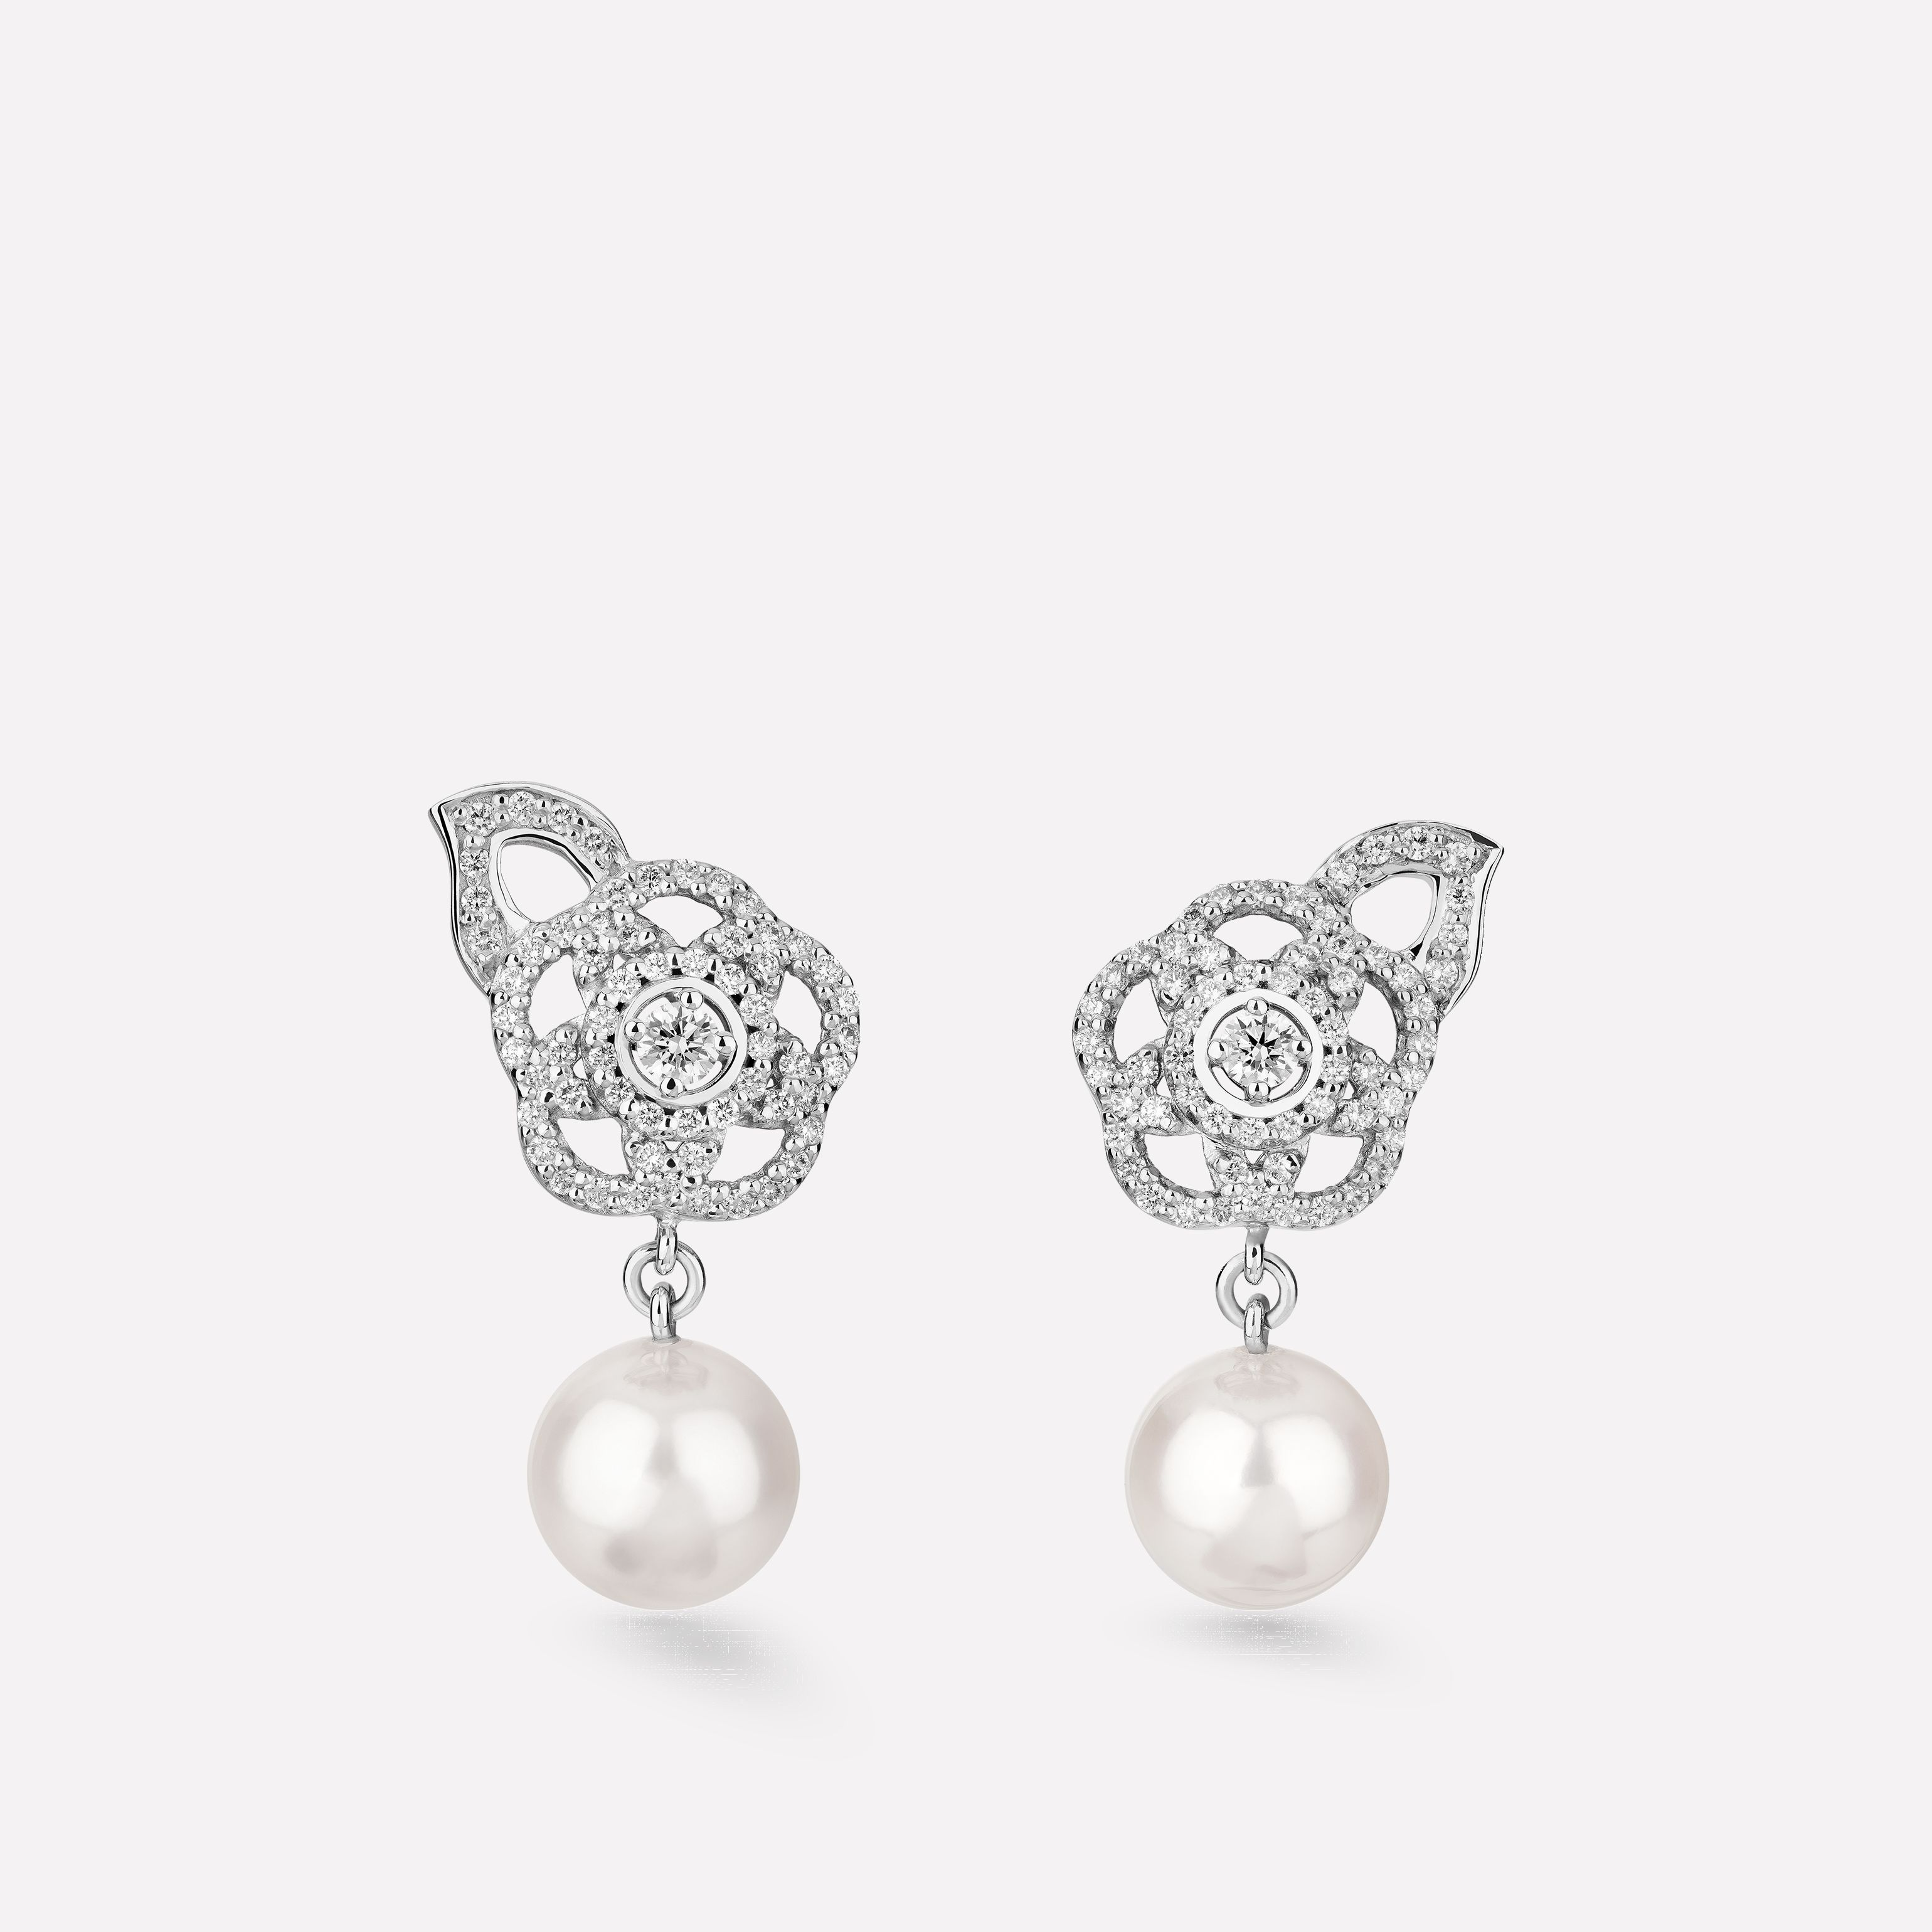 See Full Size Image  Camélia Earrings  J4125  Front View  Standard View